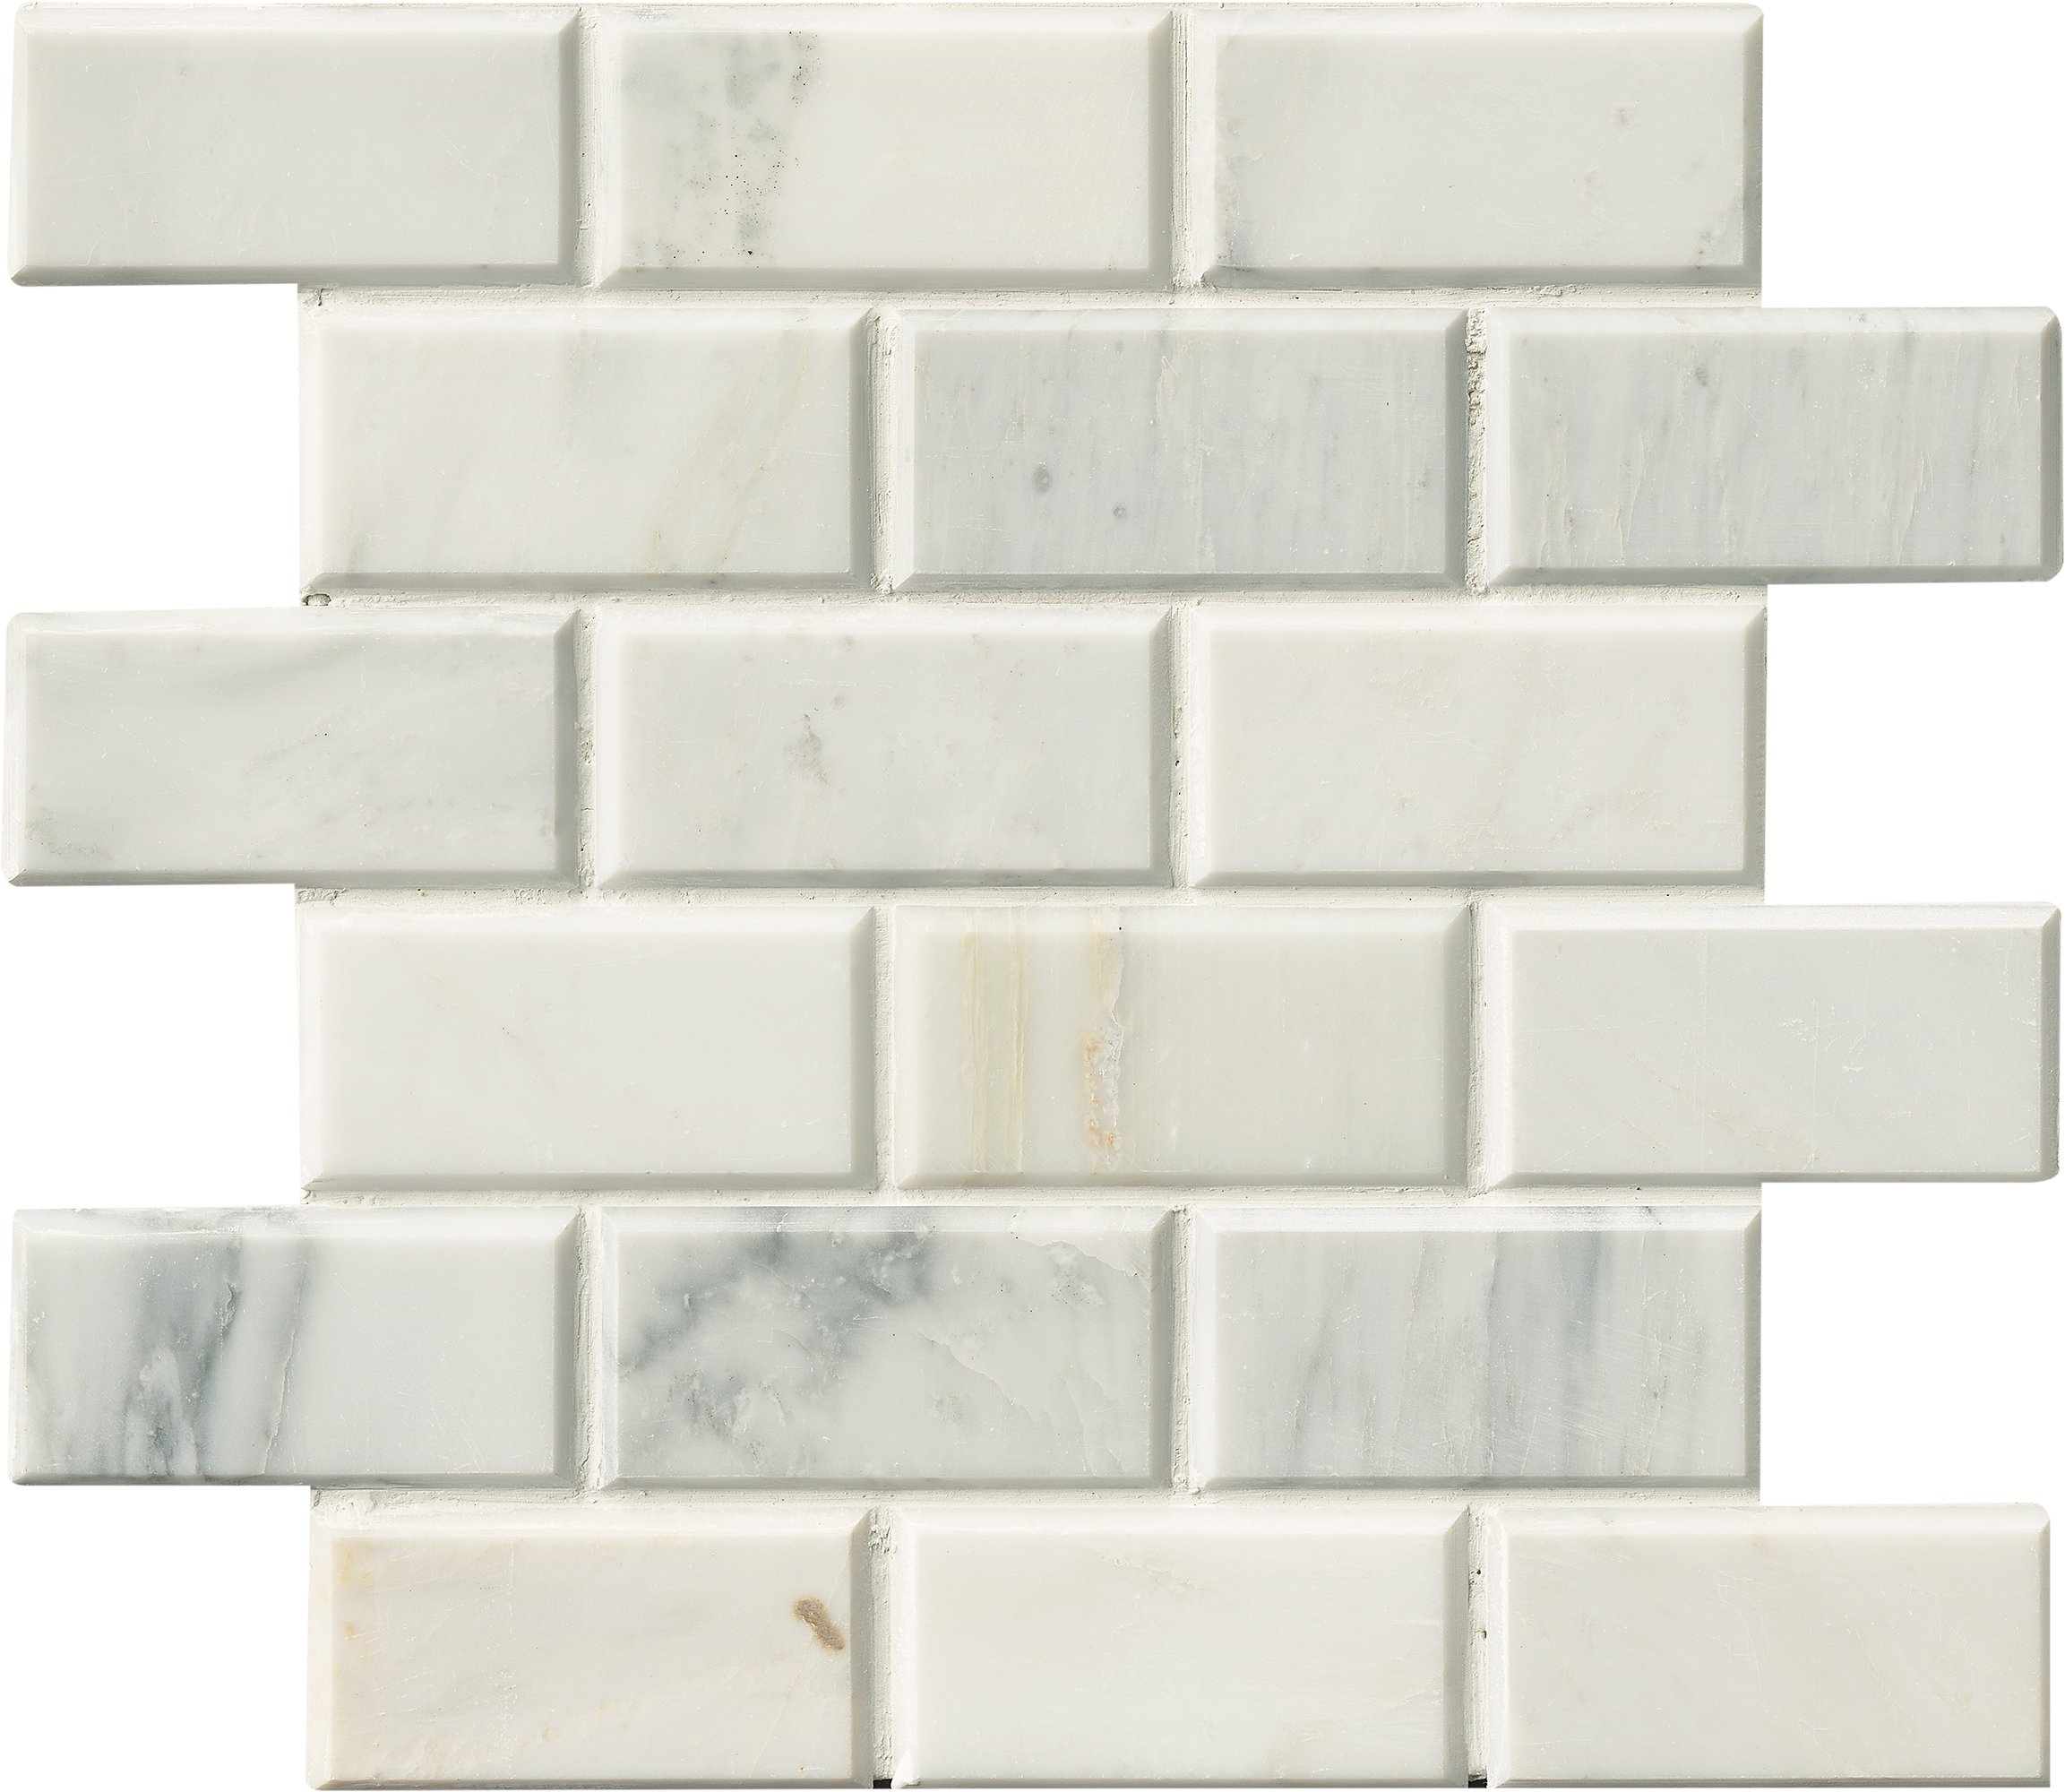 M S International Arabescato Carrara 2 In. X 4 In. Honed And Beveled Marble Mesh-Mounted Mosaic Tile, (10 sq. ft., 10 pieces per case)